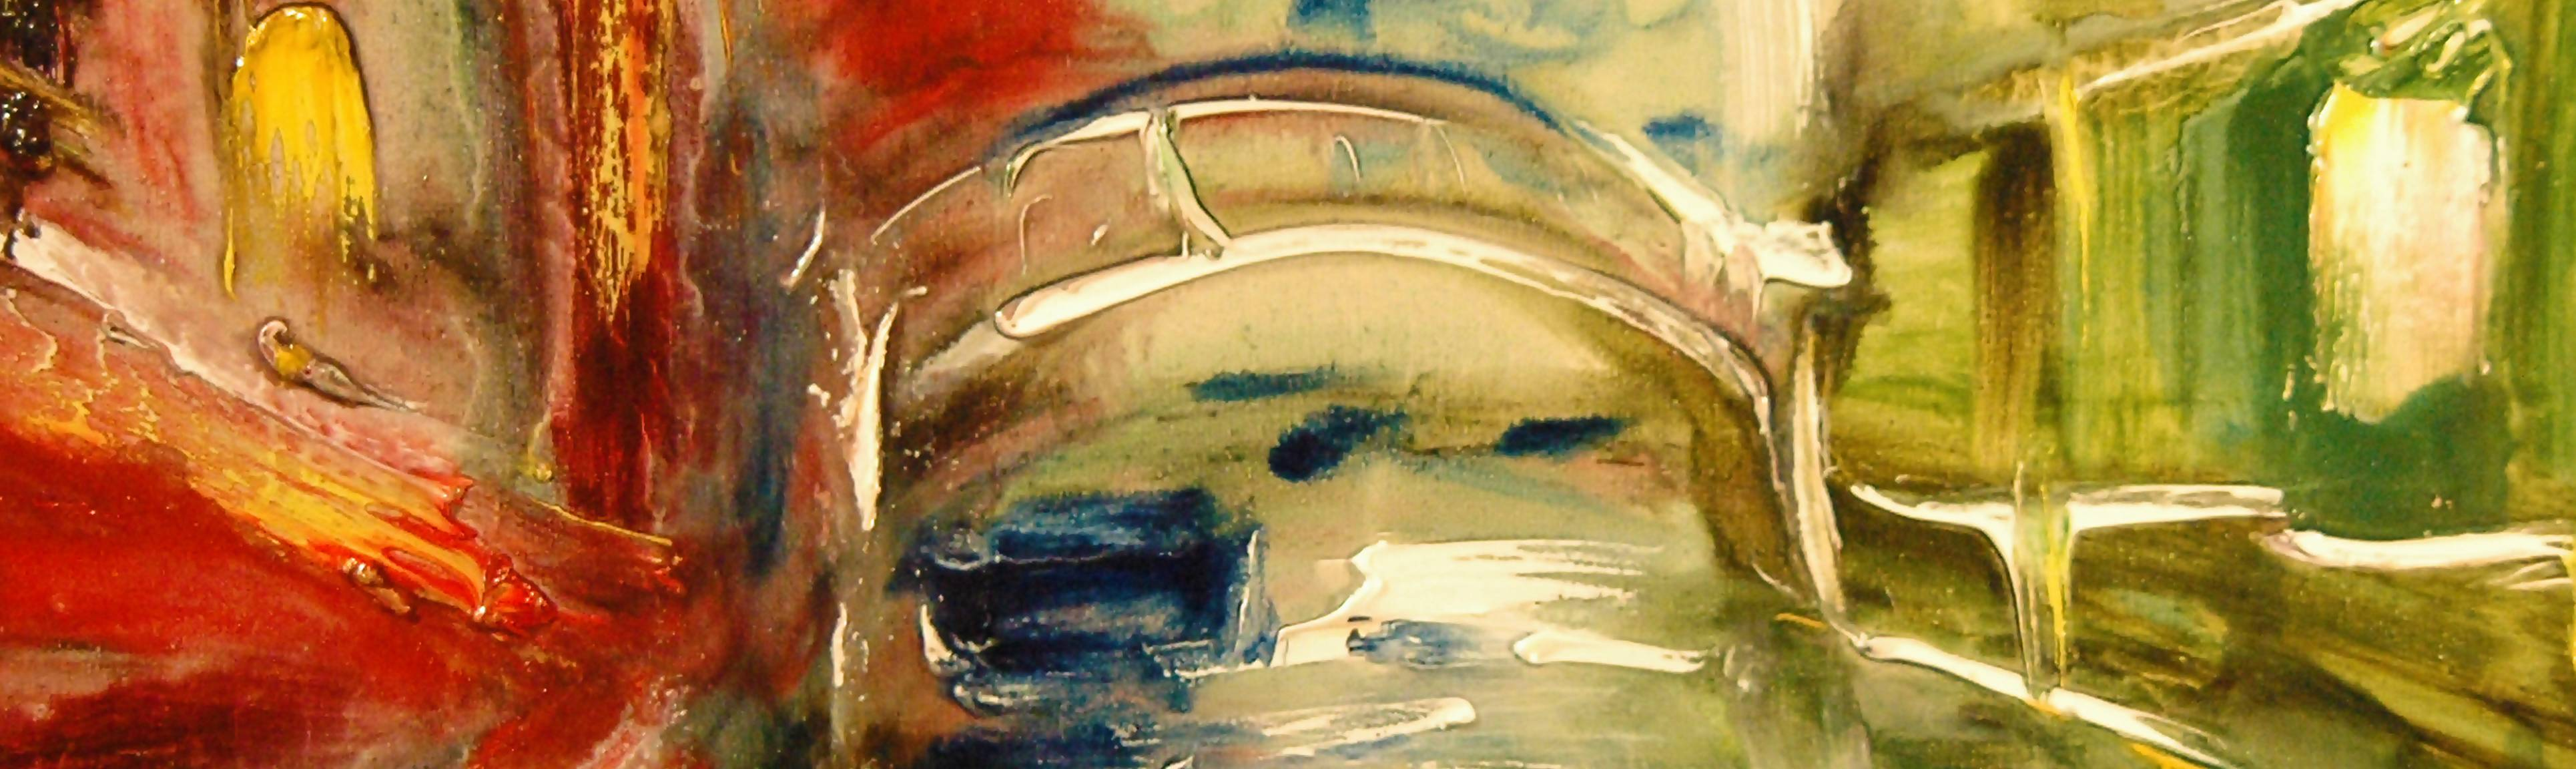 Detail of abstract painting in Venice Contemporary Art Tour